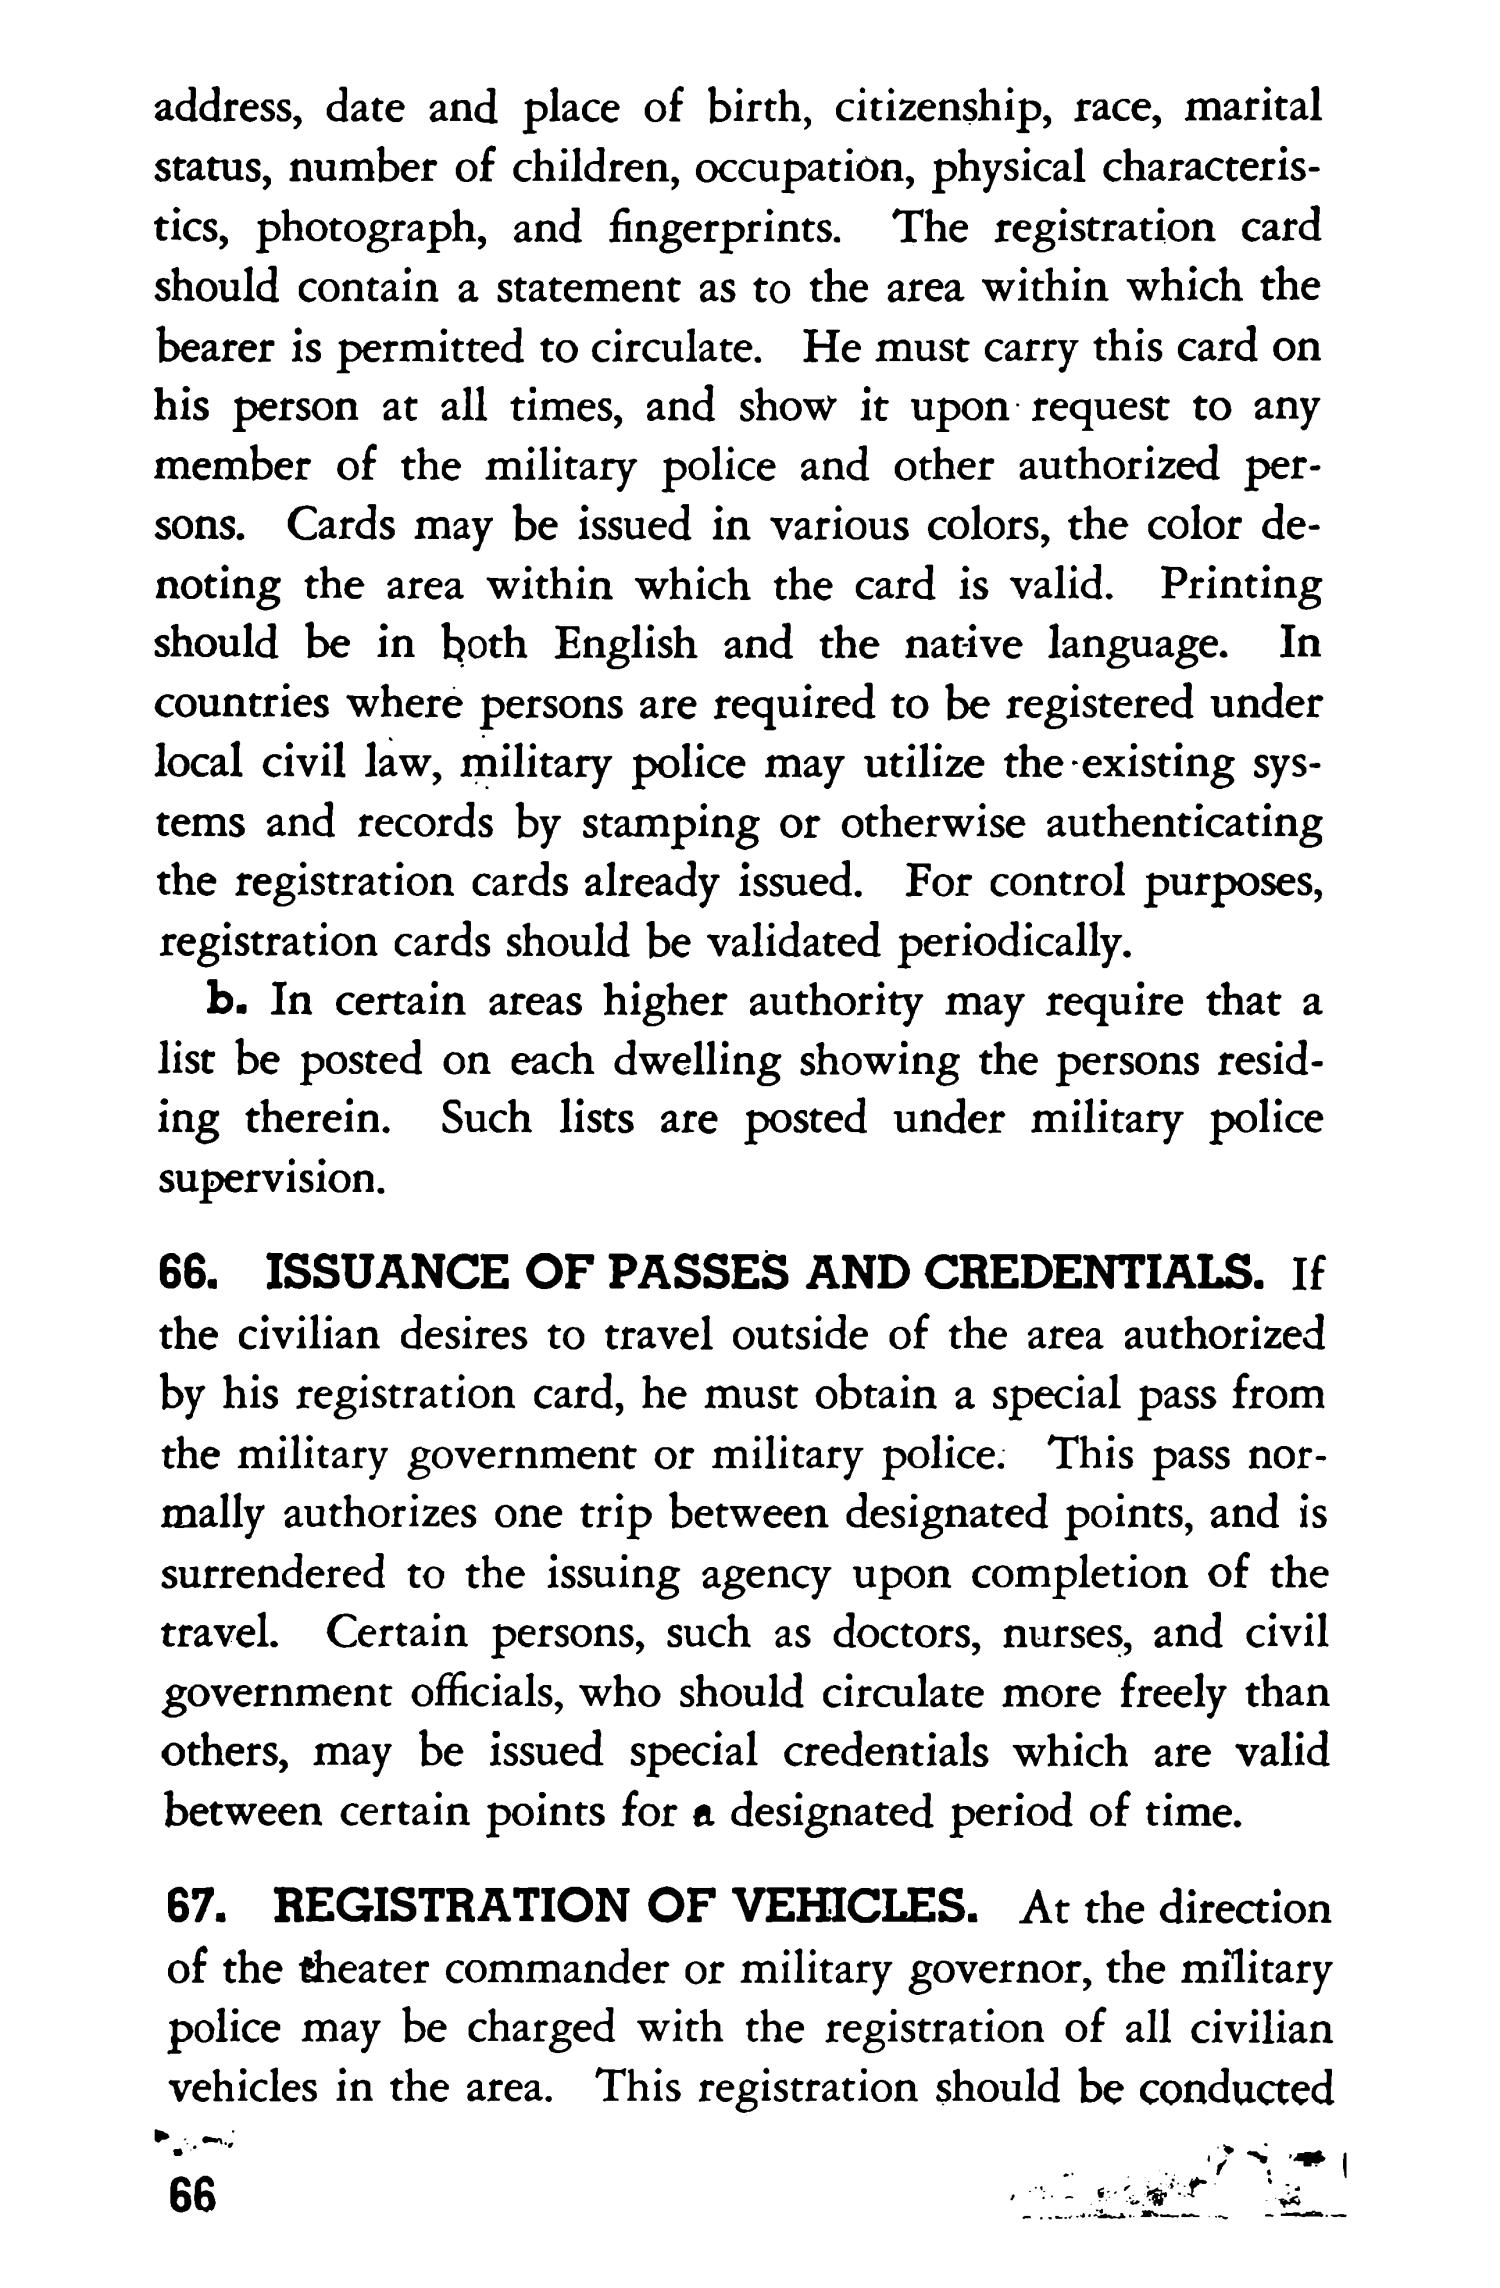 Military police in towns and cities                                                                                                      66